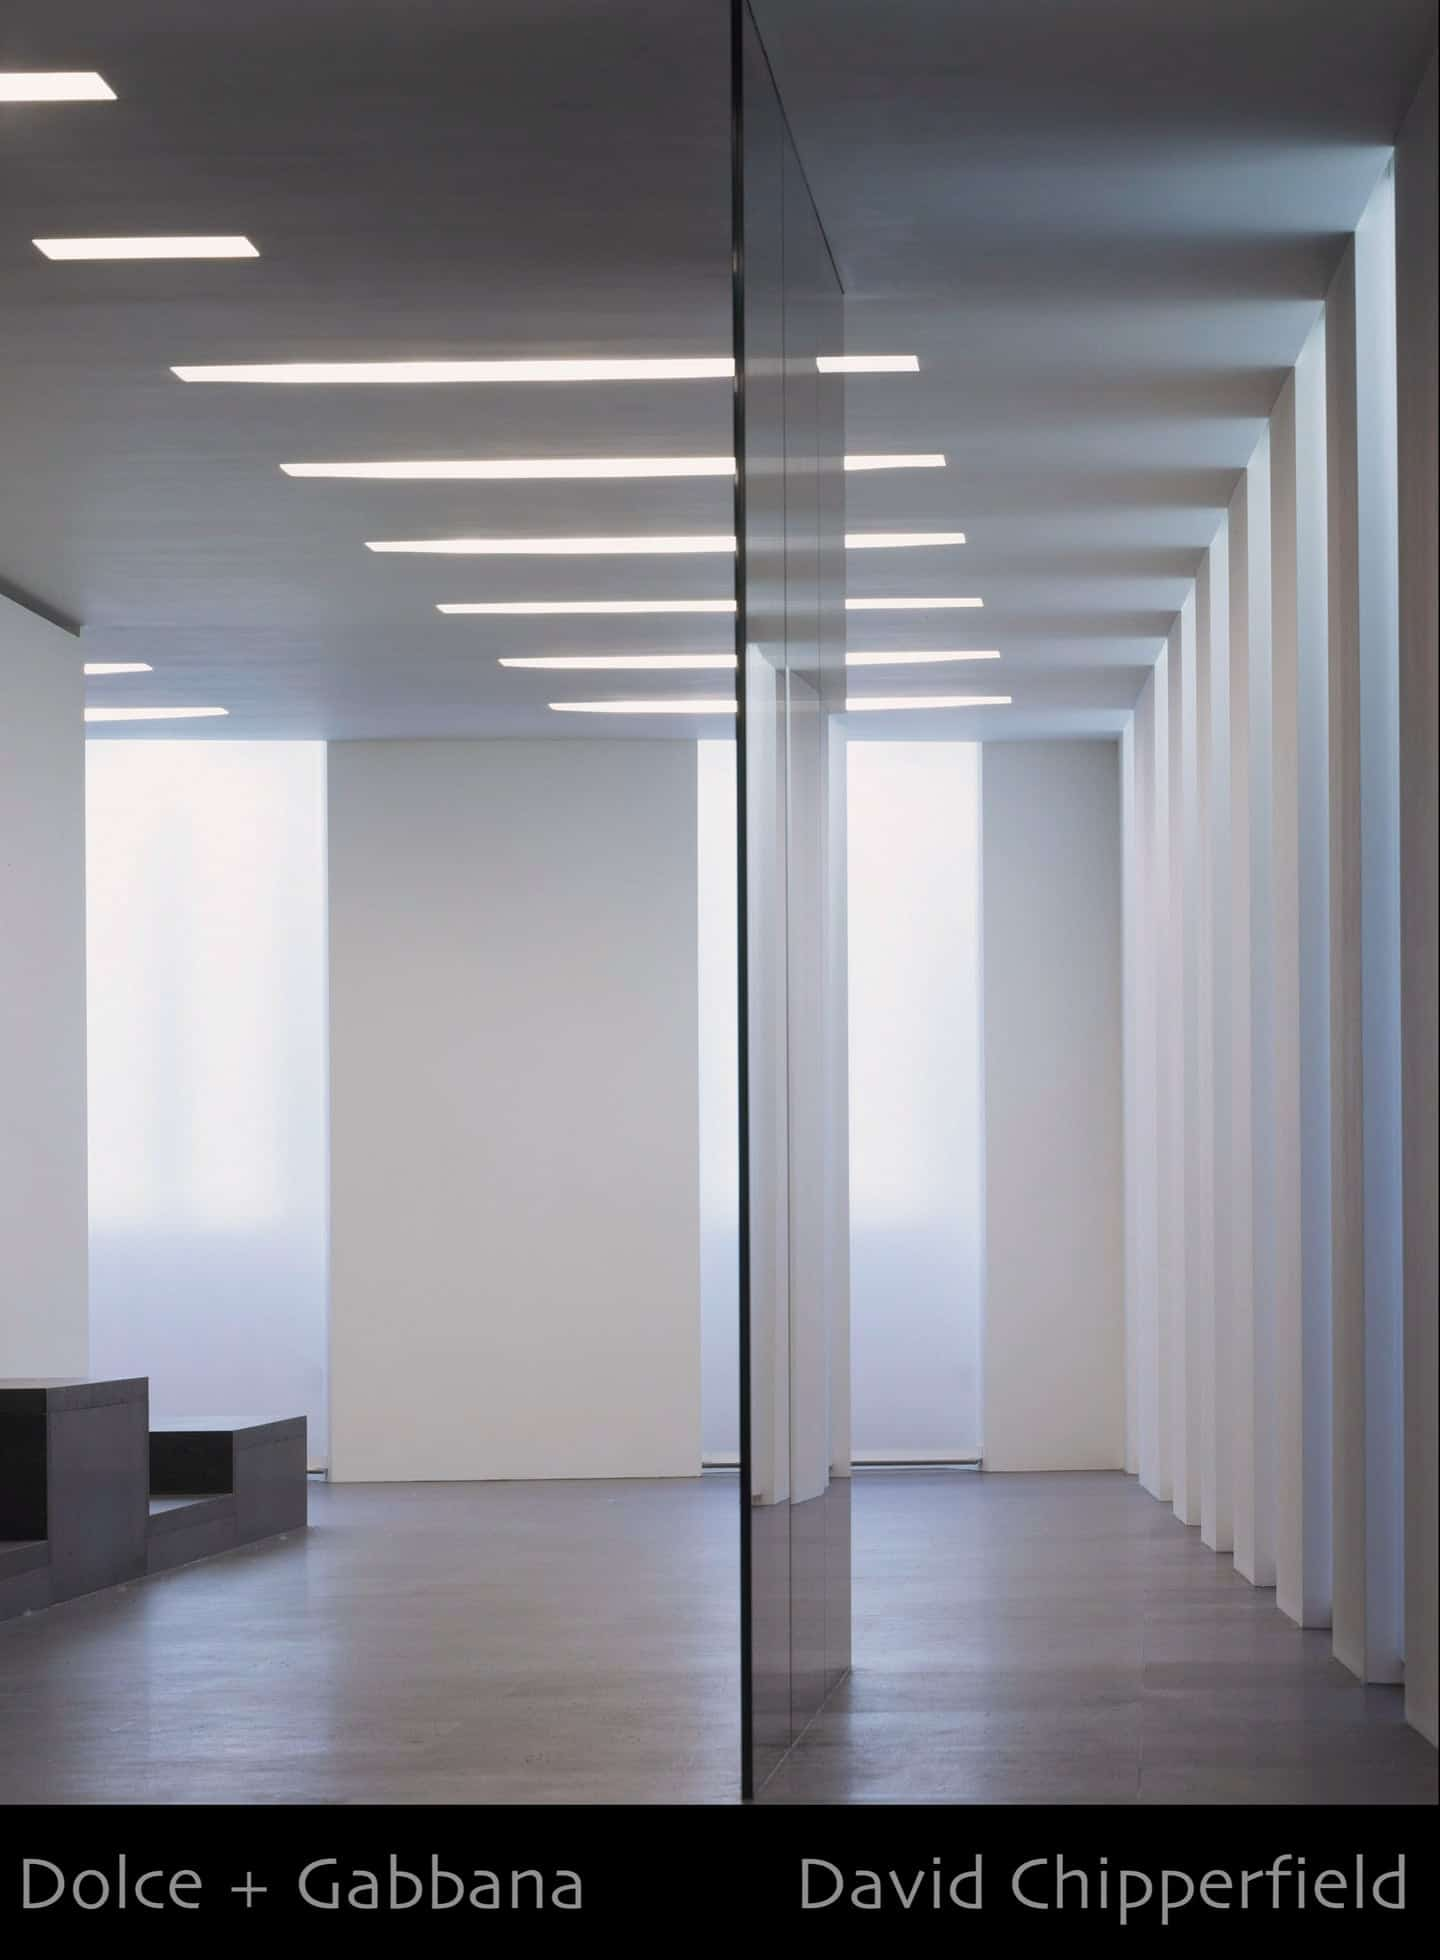 A slide show of mainly interior spaces, museums, galleries...